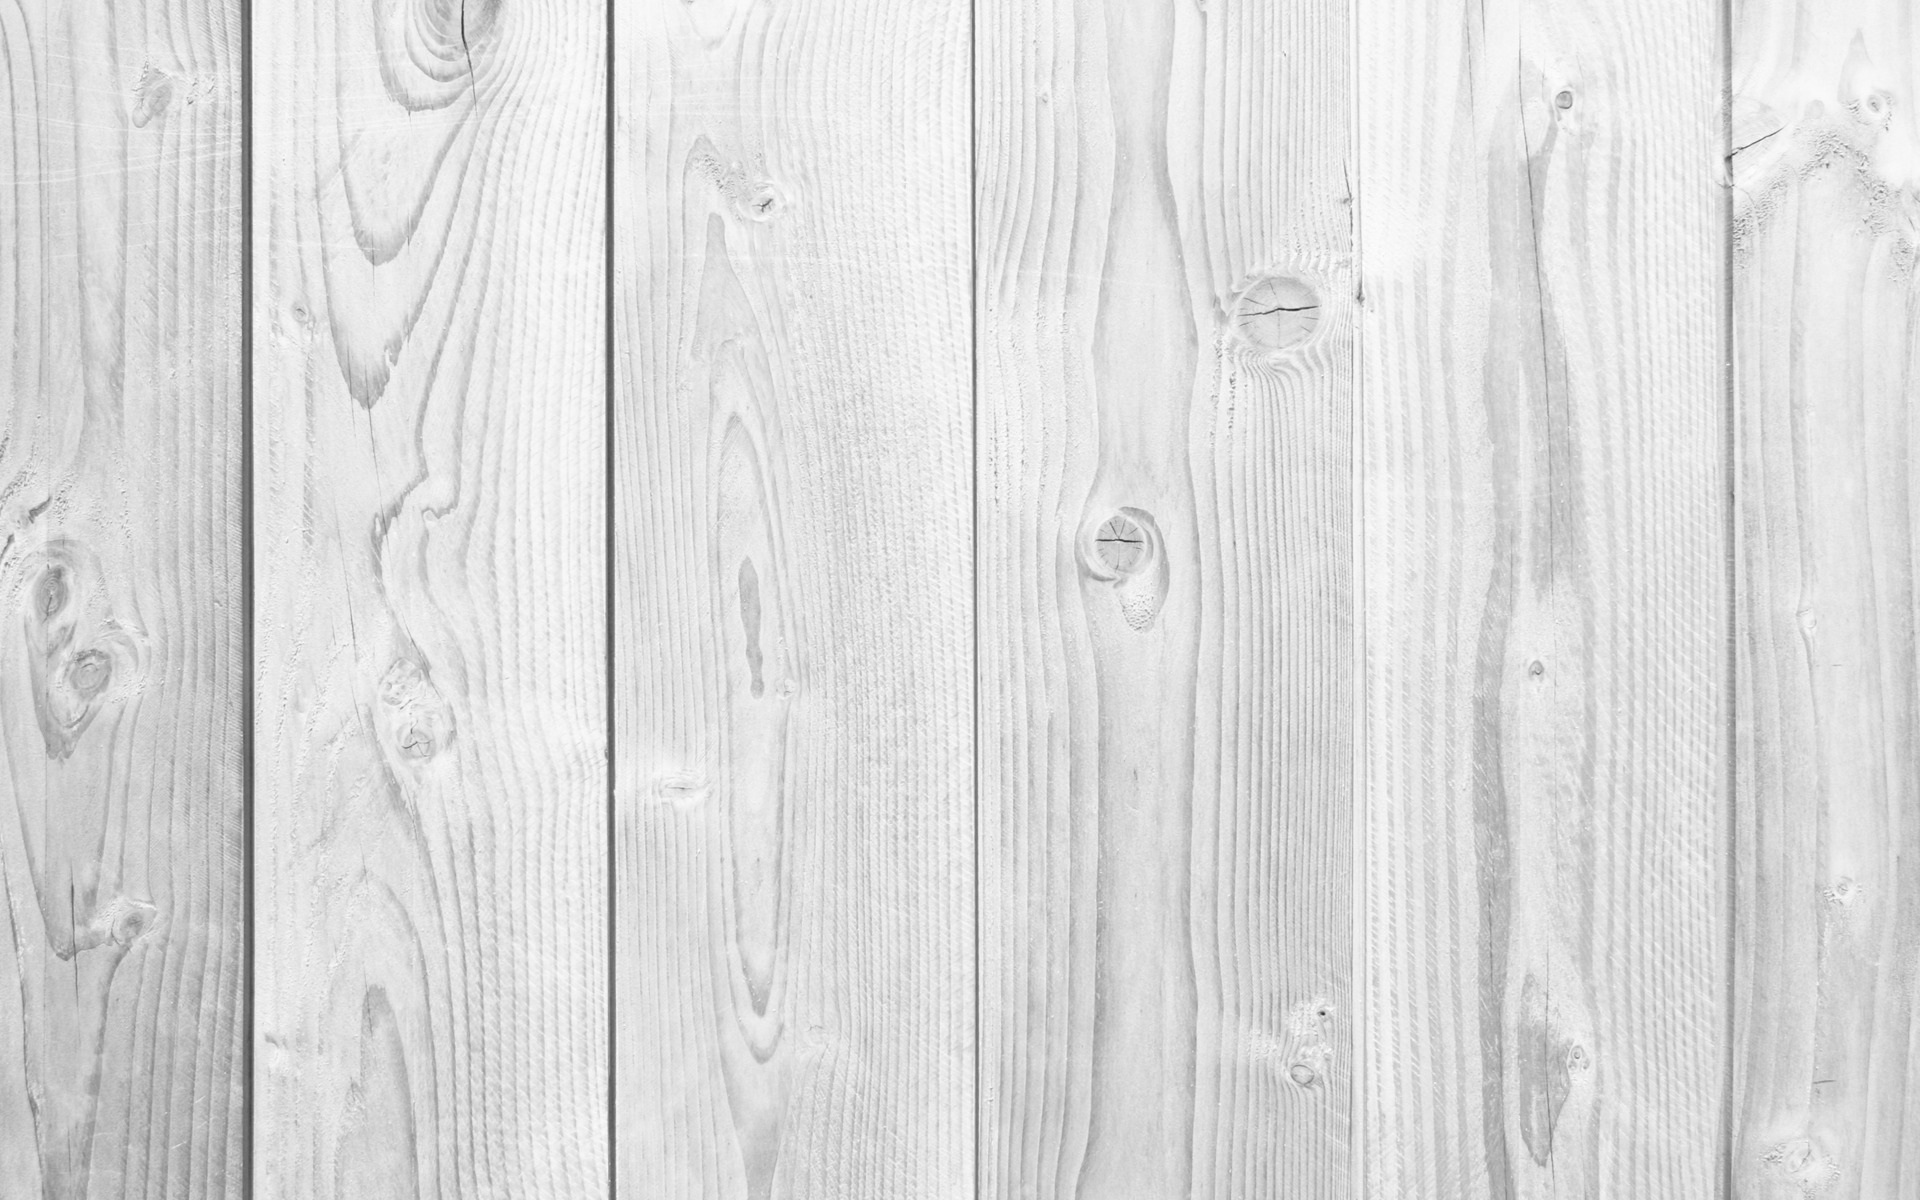 Free stock photo of wood  pattern  texture  wall. Wood Images   Pexels   Free Stock Photos